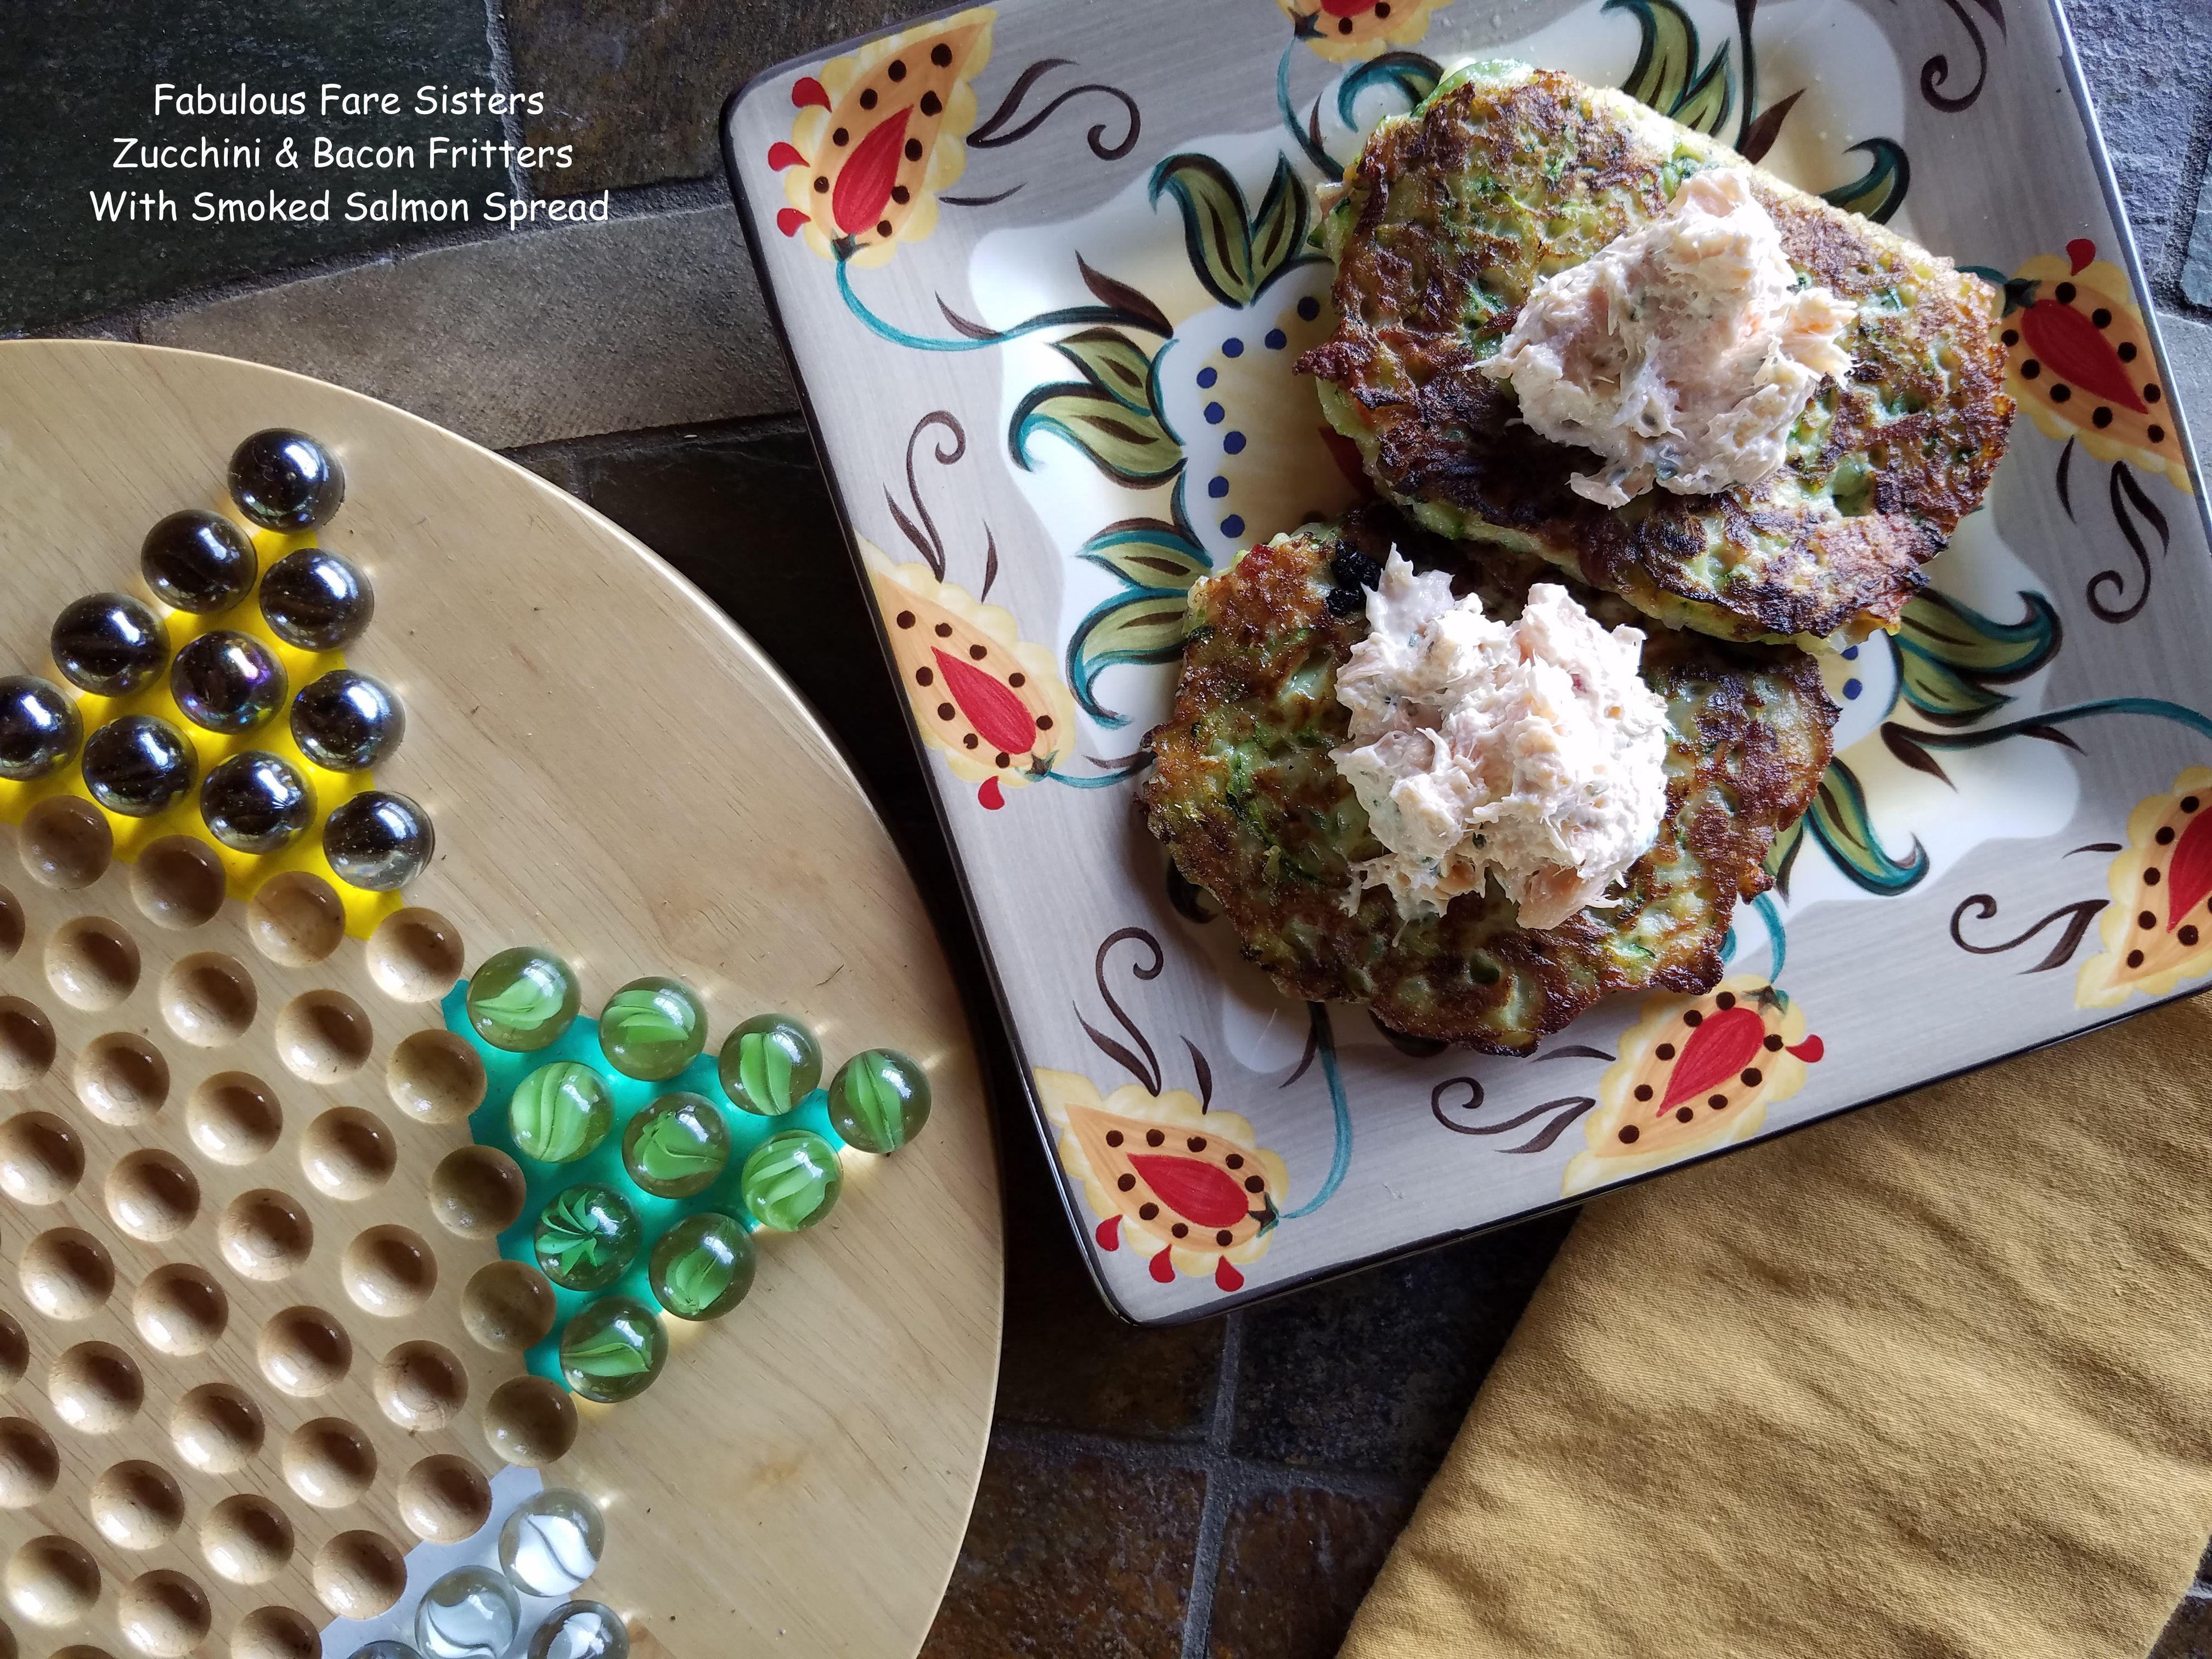 Zucchini & Bacon Fritters With Smoked Salmon Spread